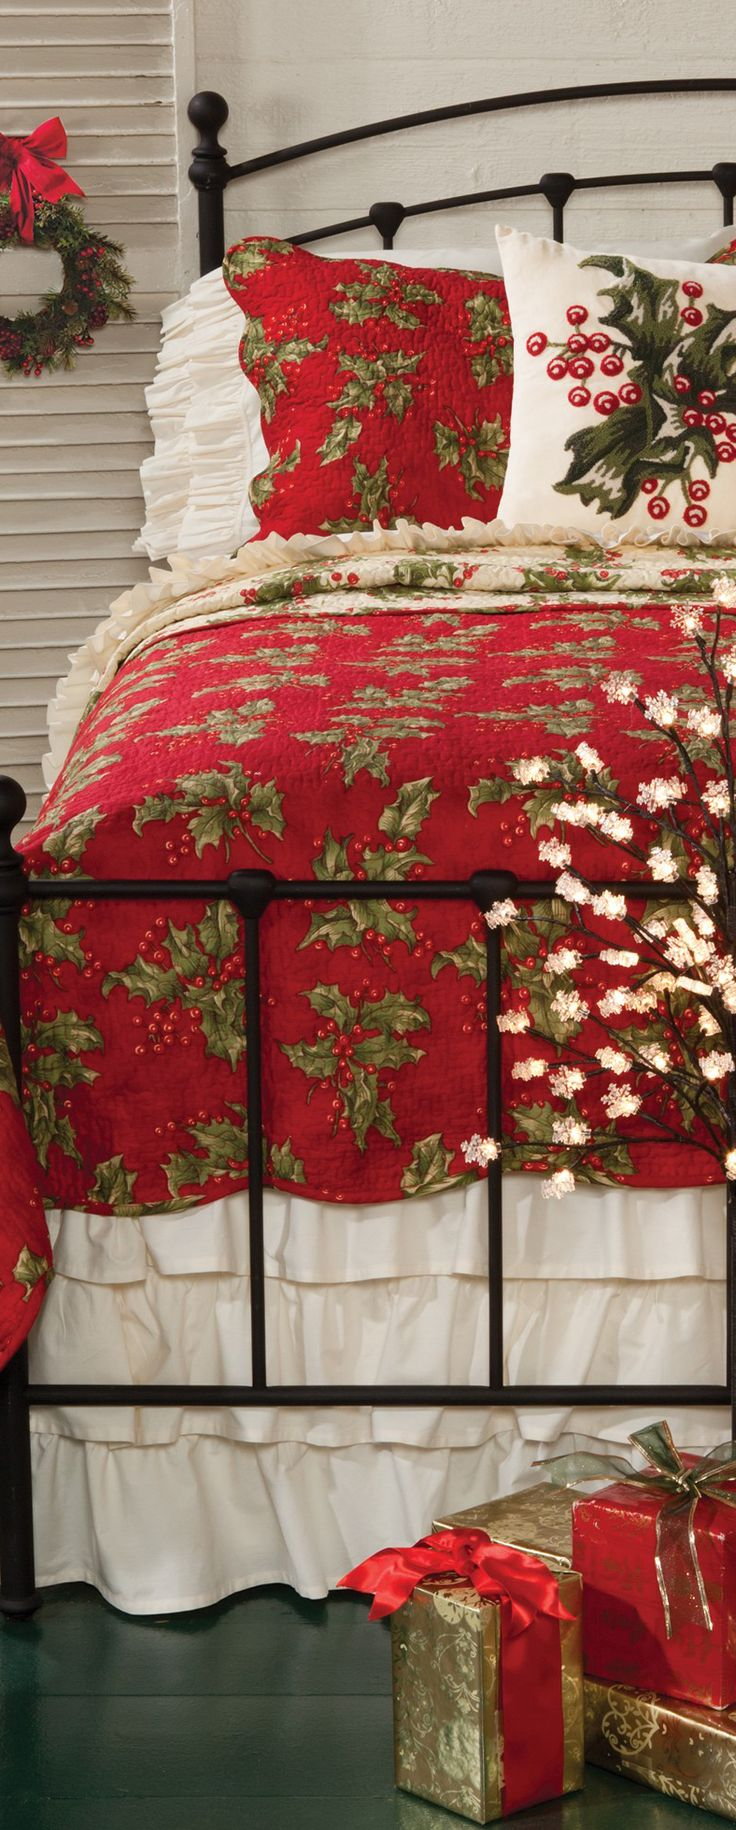 Rustic Christmas Bedding Collection | Christmas Decor